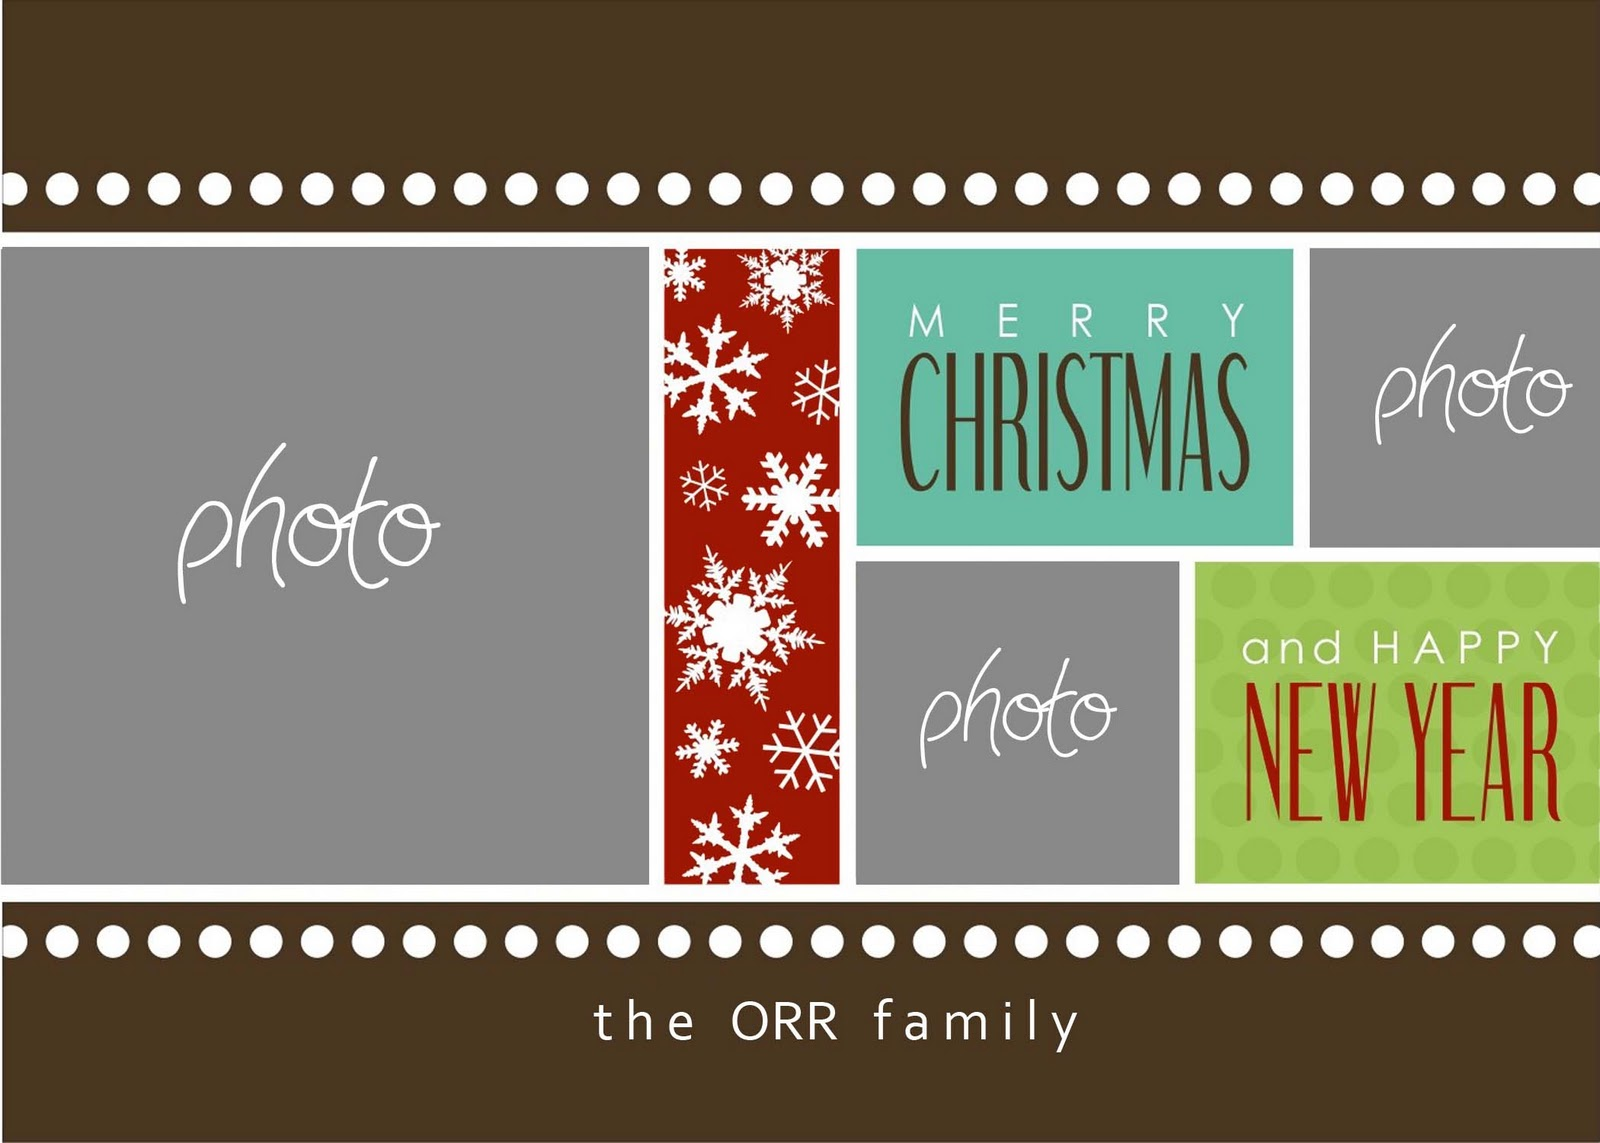 Christmas Card Templates For Photoshop Here are some christmas cards